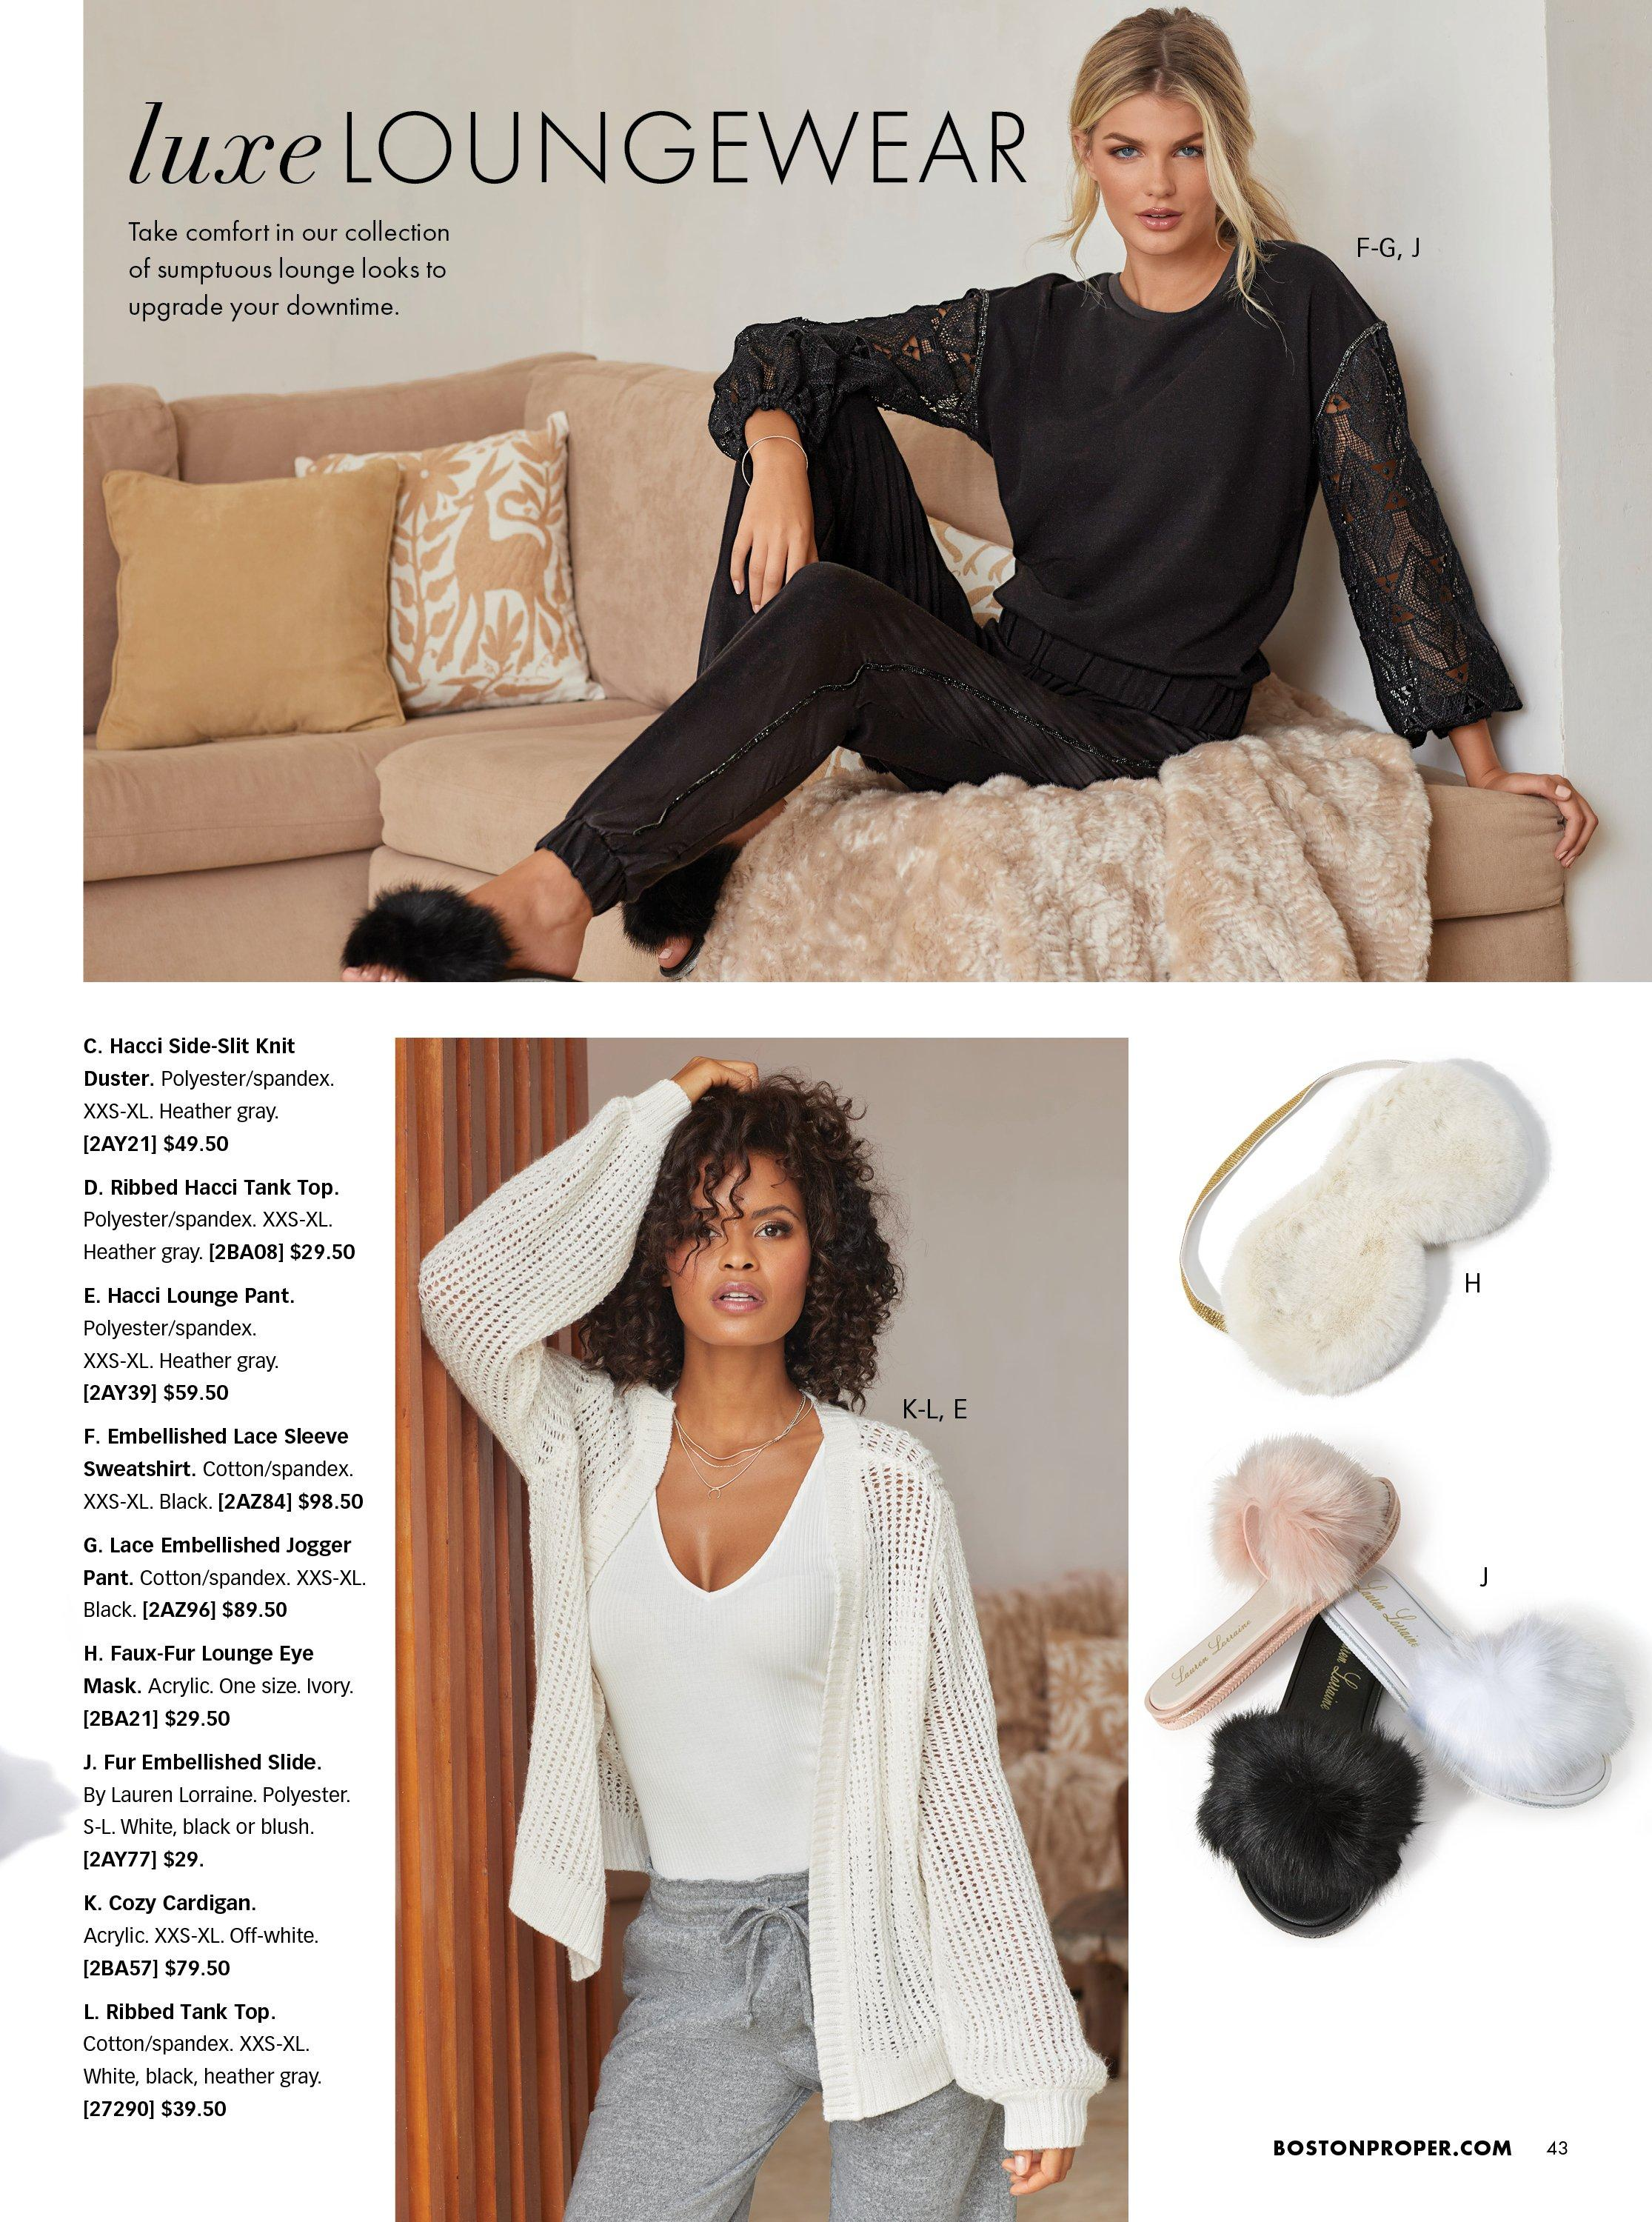 top model wearing a black sweater with lace sleeves, black lace pants, and black faux fur slippers. bottom model wearing a white crochet duster, white ribbed tank top, and gray sweatpants. also shown: slippers in white, black, and pink and white faux fur eye mask.